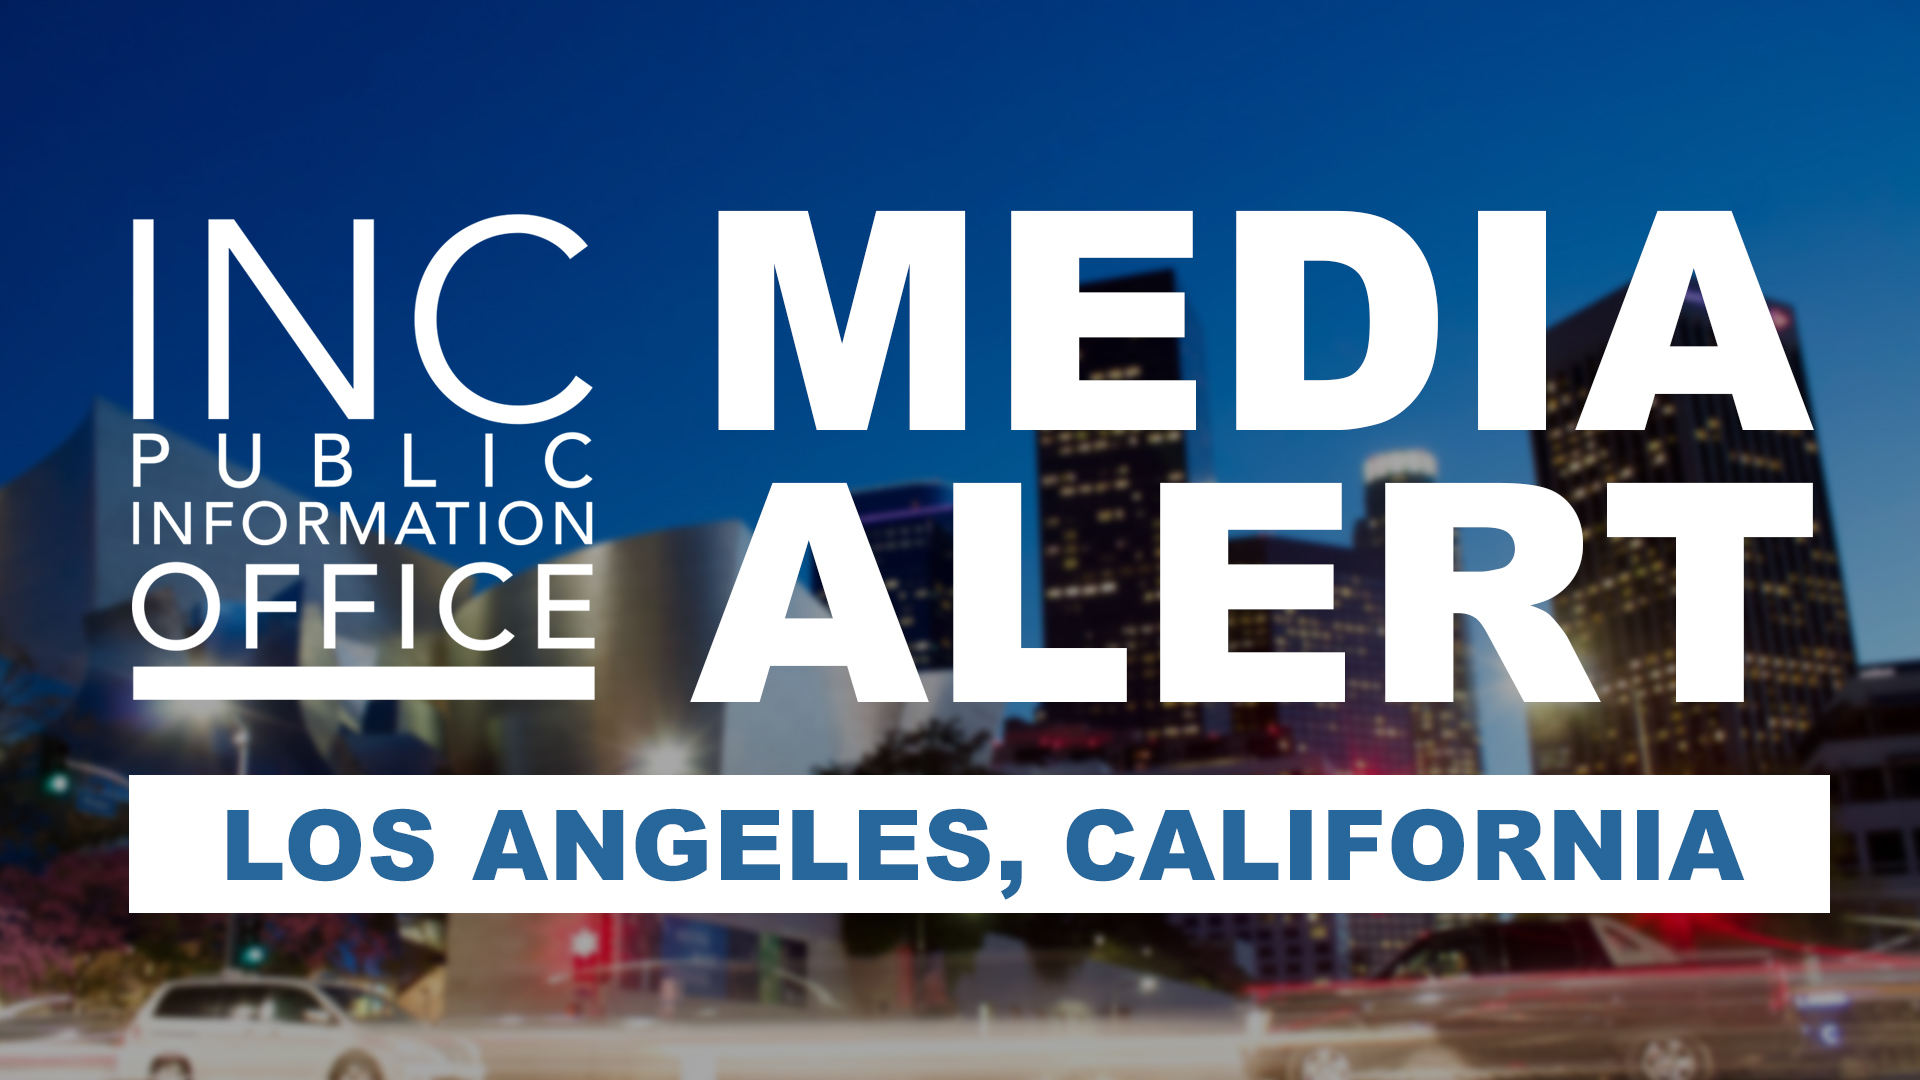 Los Angeles city scape with text: INC Public Information Office, Media Alert, Los Angeles, California